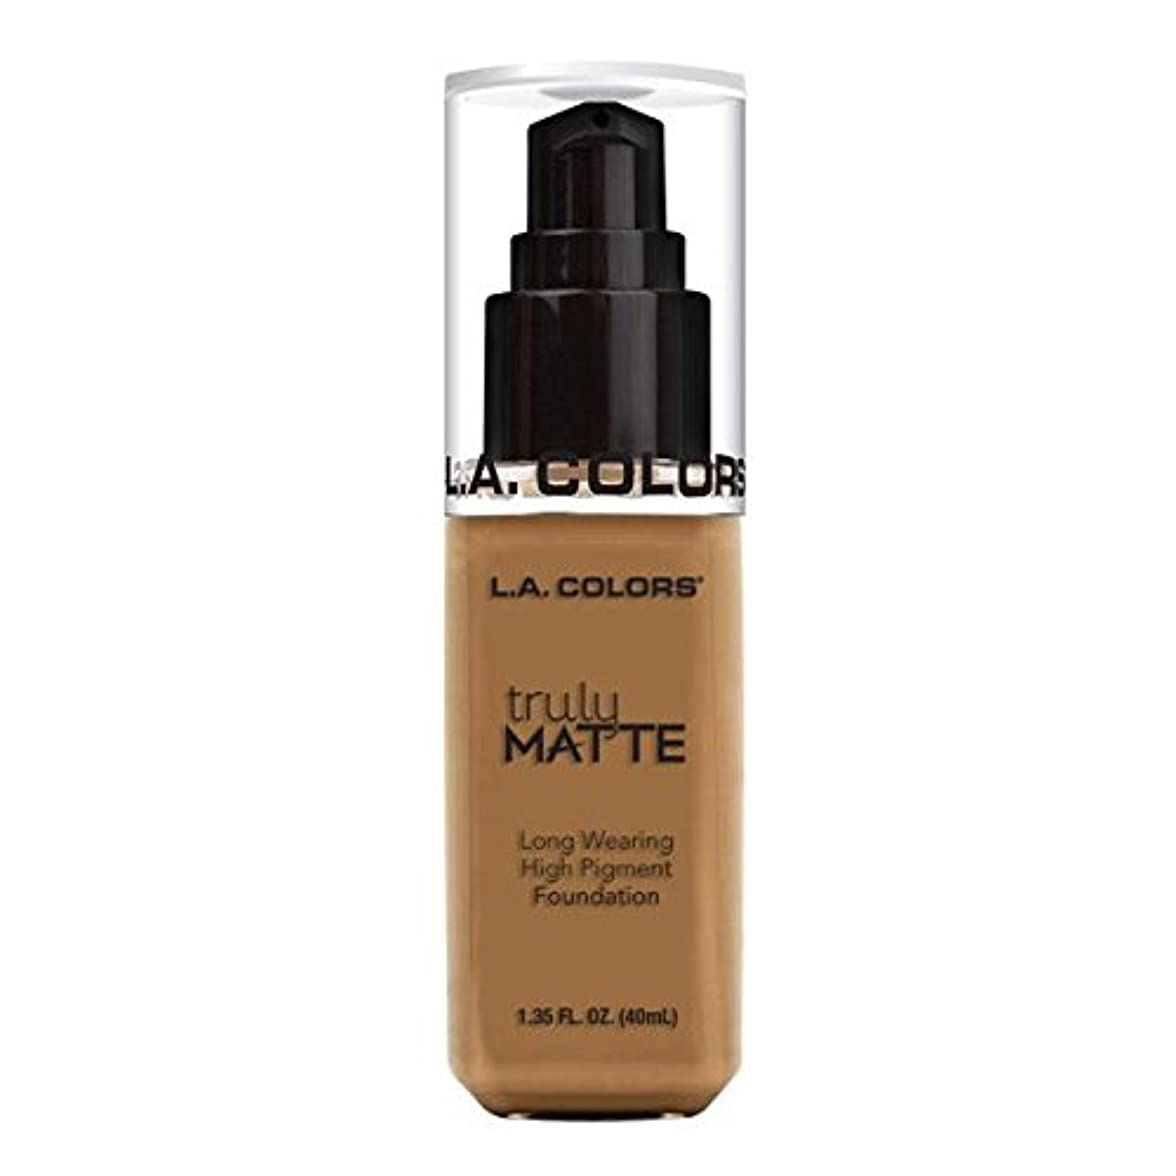 自発分類幸運なことに(6 Pack) L.A. COLORS Truly Matte Foundation - Warm Caramel (並行輸入品)